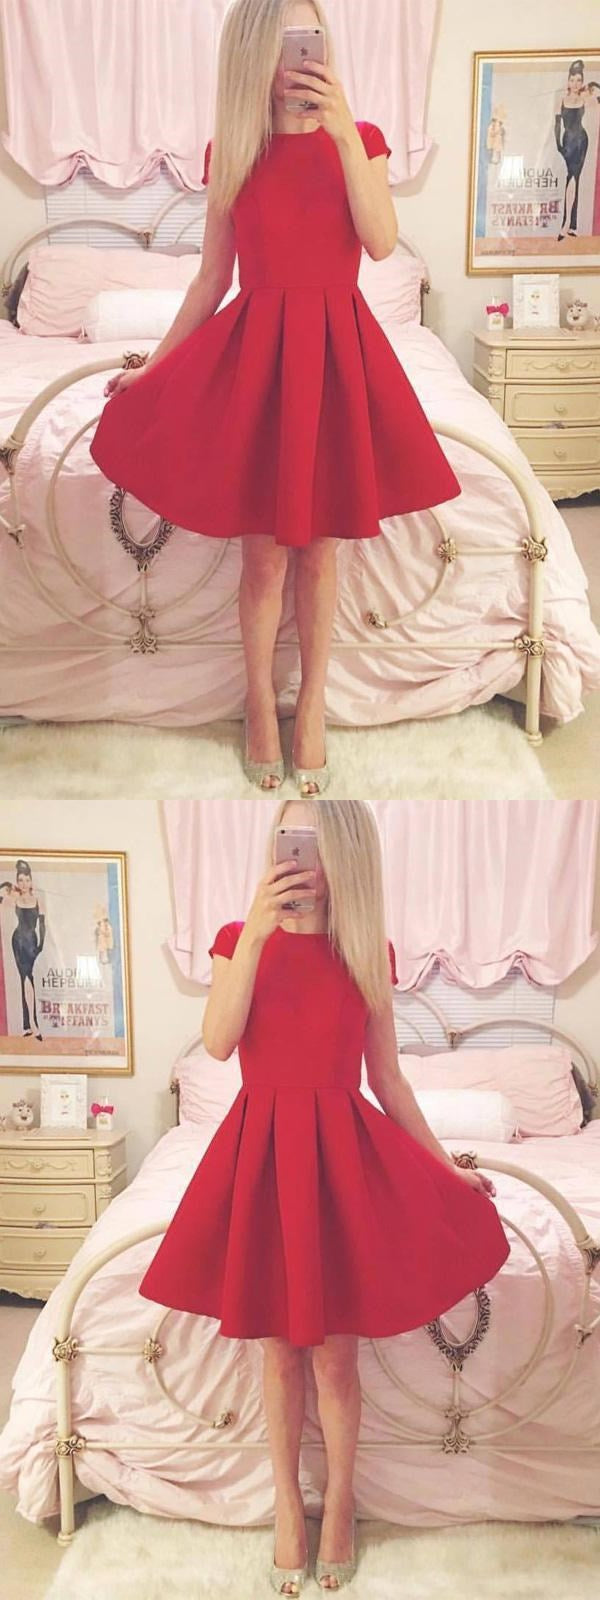 Short Sleeves Simple Cheap Short Red Homecoming Dresses Online, CM534